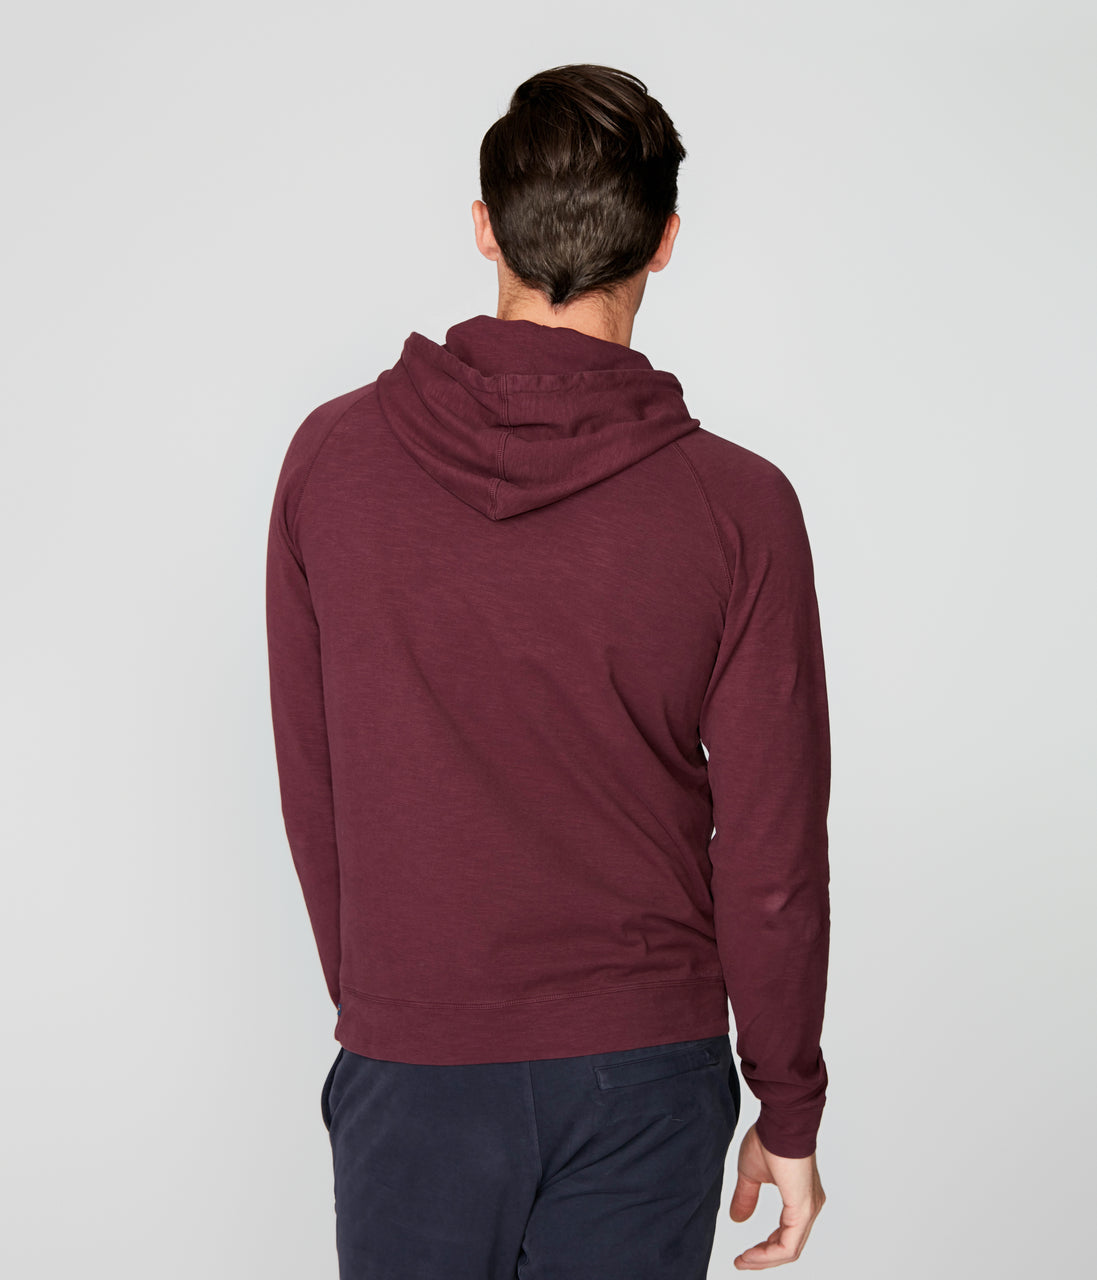 Soft Slub Jersey Legend Hoodie - Wine - Good Man Brand - Soft Slub Jersey Legend Hoodie - Wine